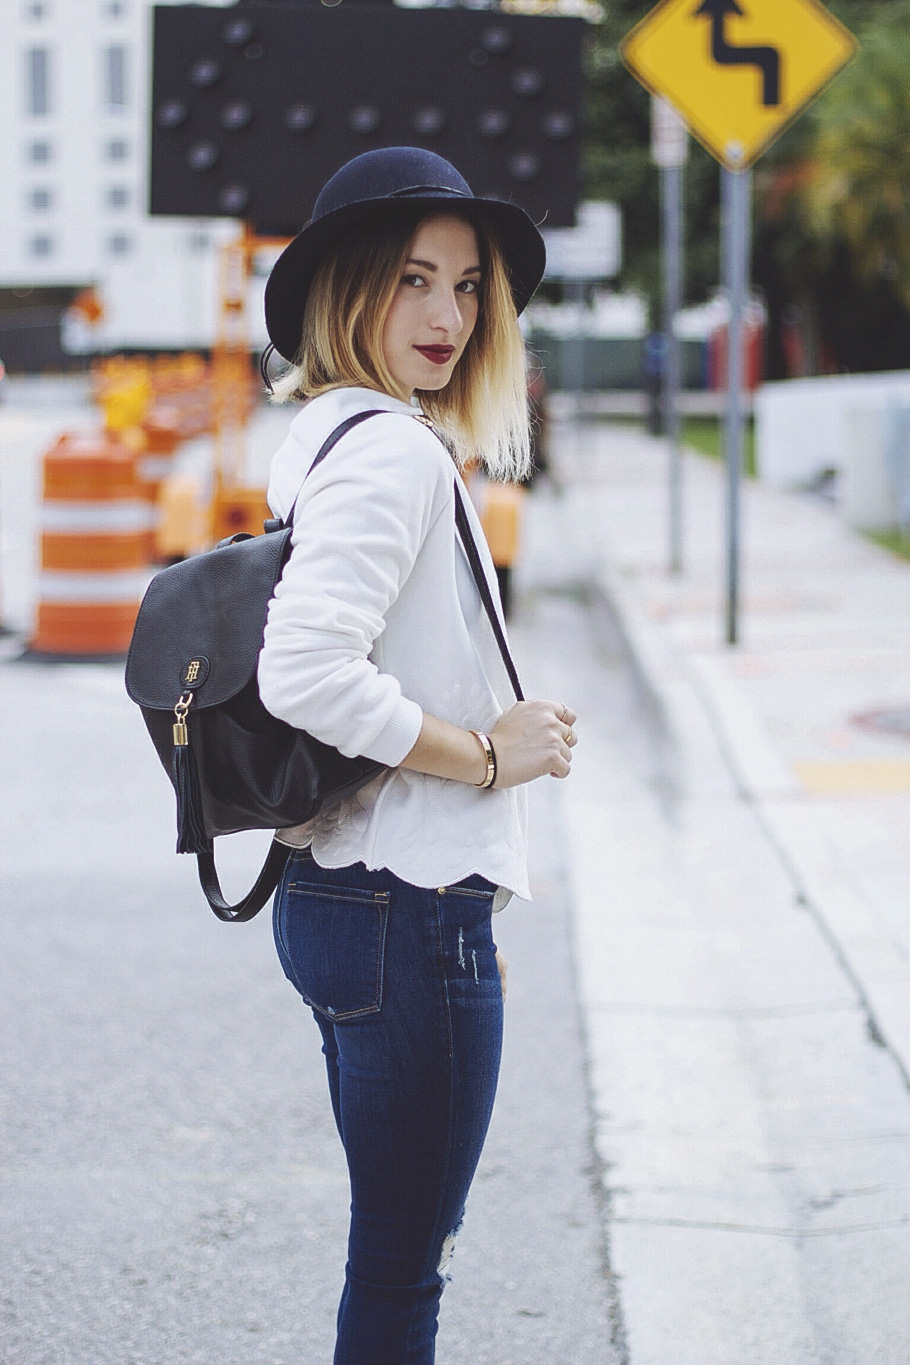 miami-fashion-bloggers_7.jpg